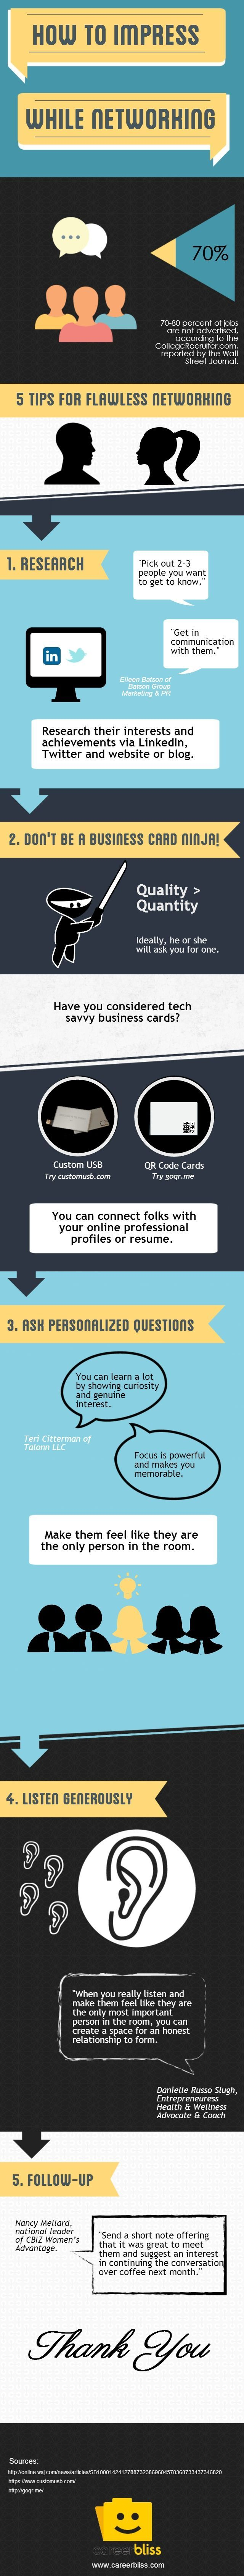 best images about build my network helpful tips how to impress while networking